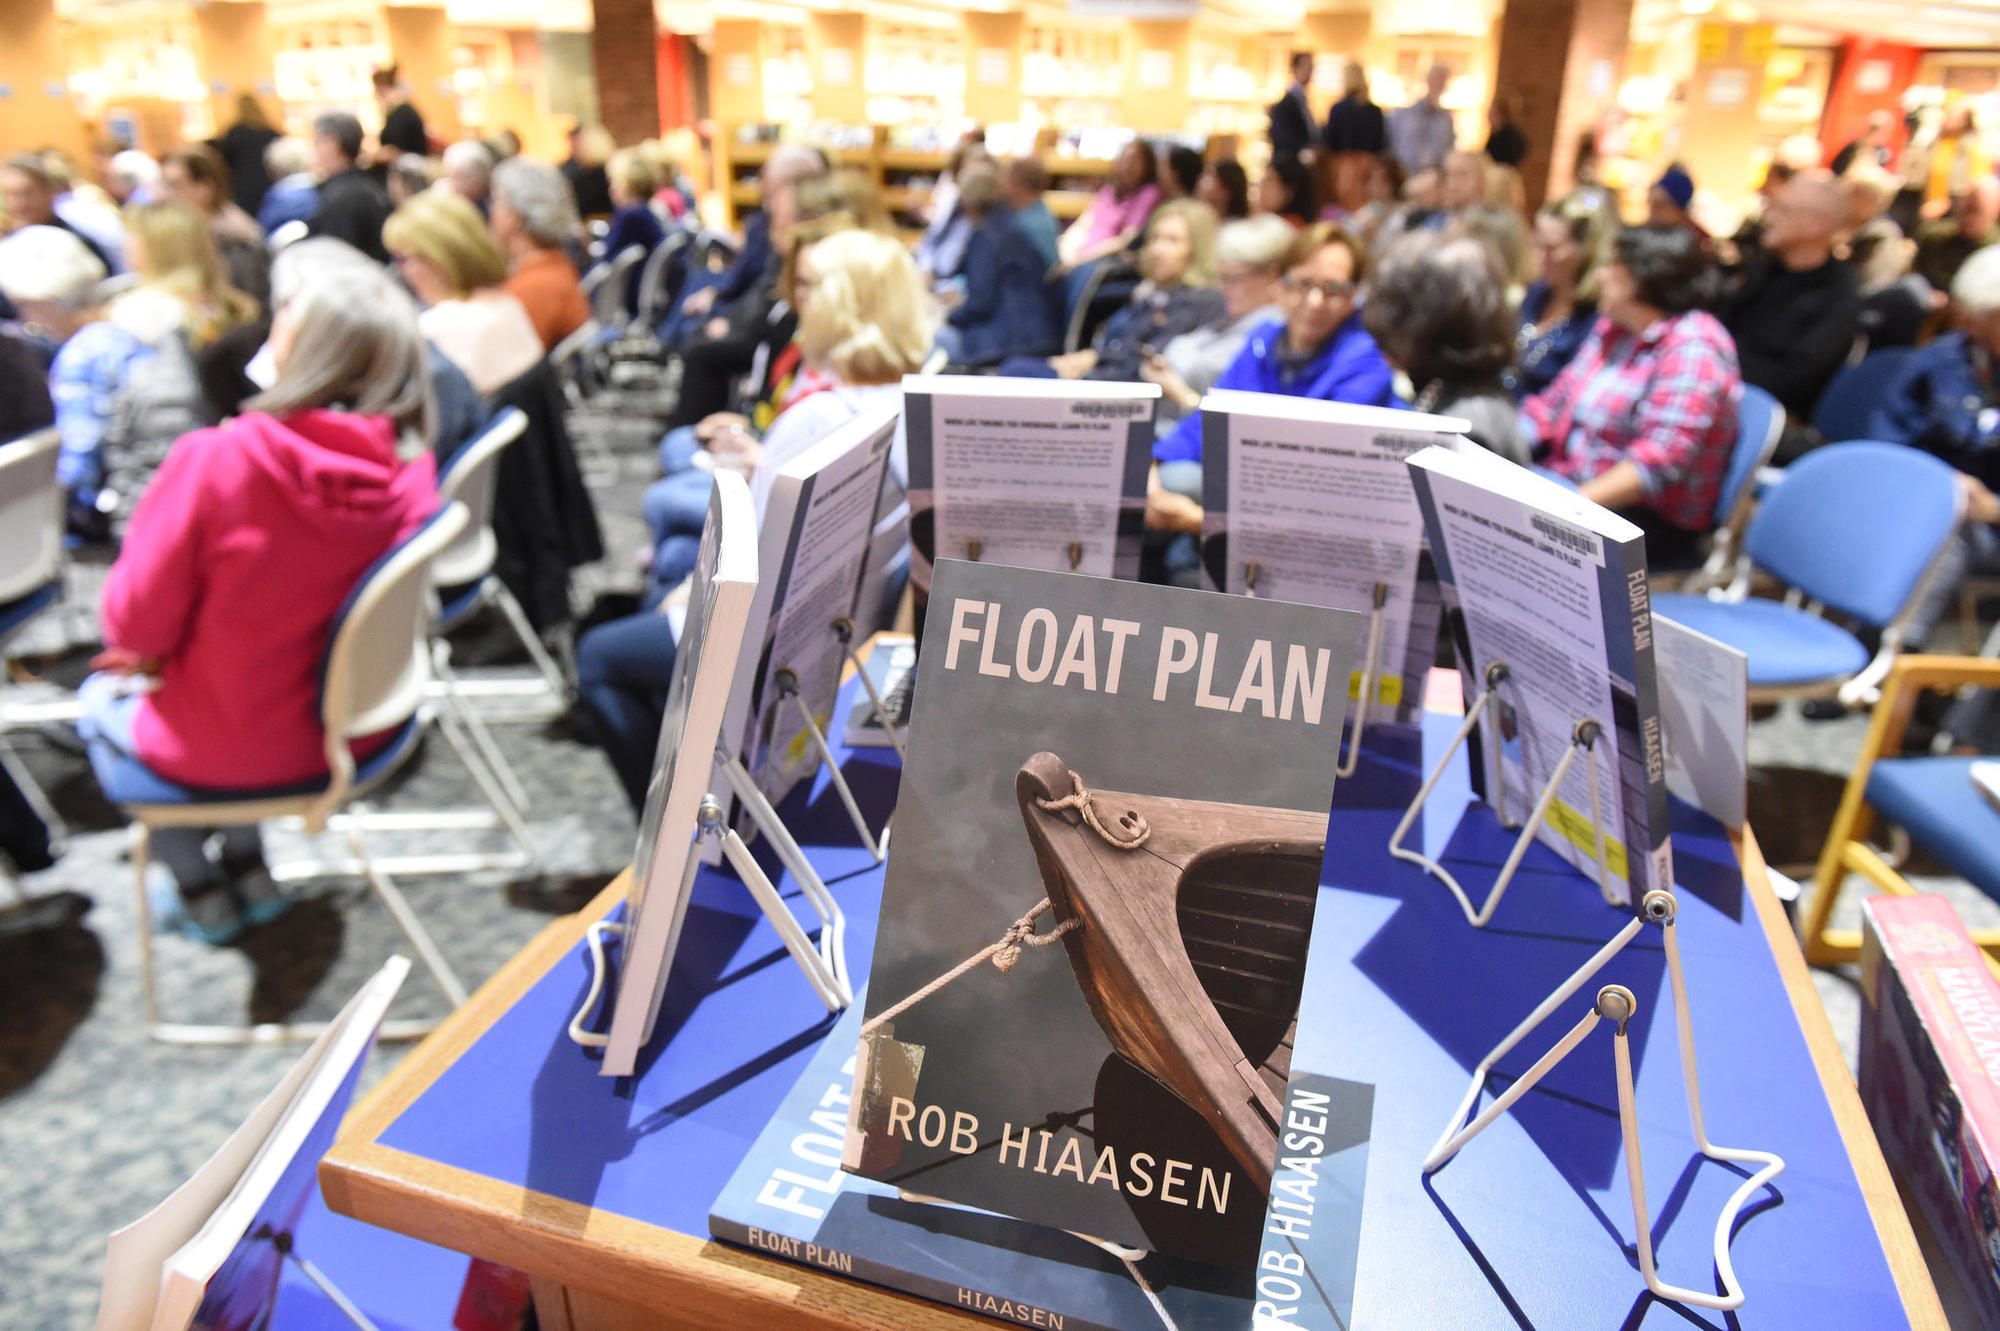 Family, friends, co-workers come together to read Rob Hiaasen's 'Float Plan'